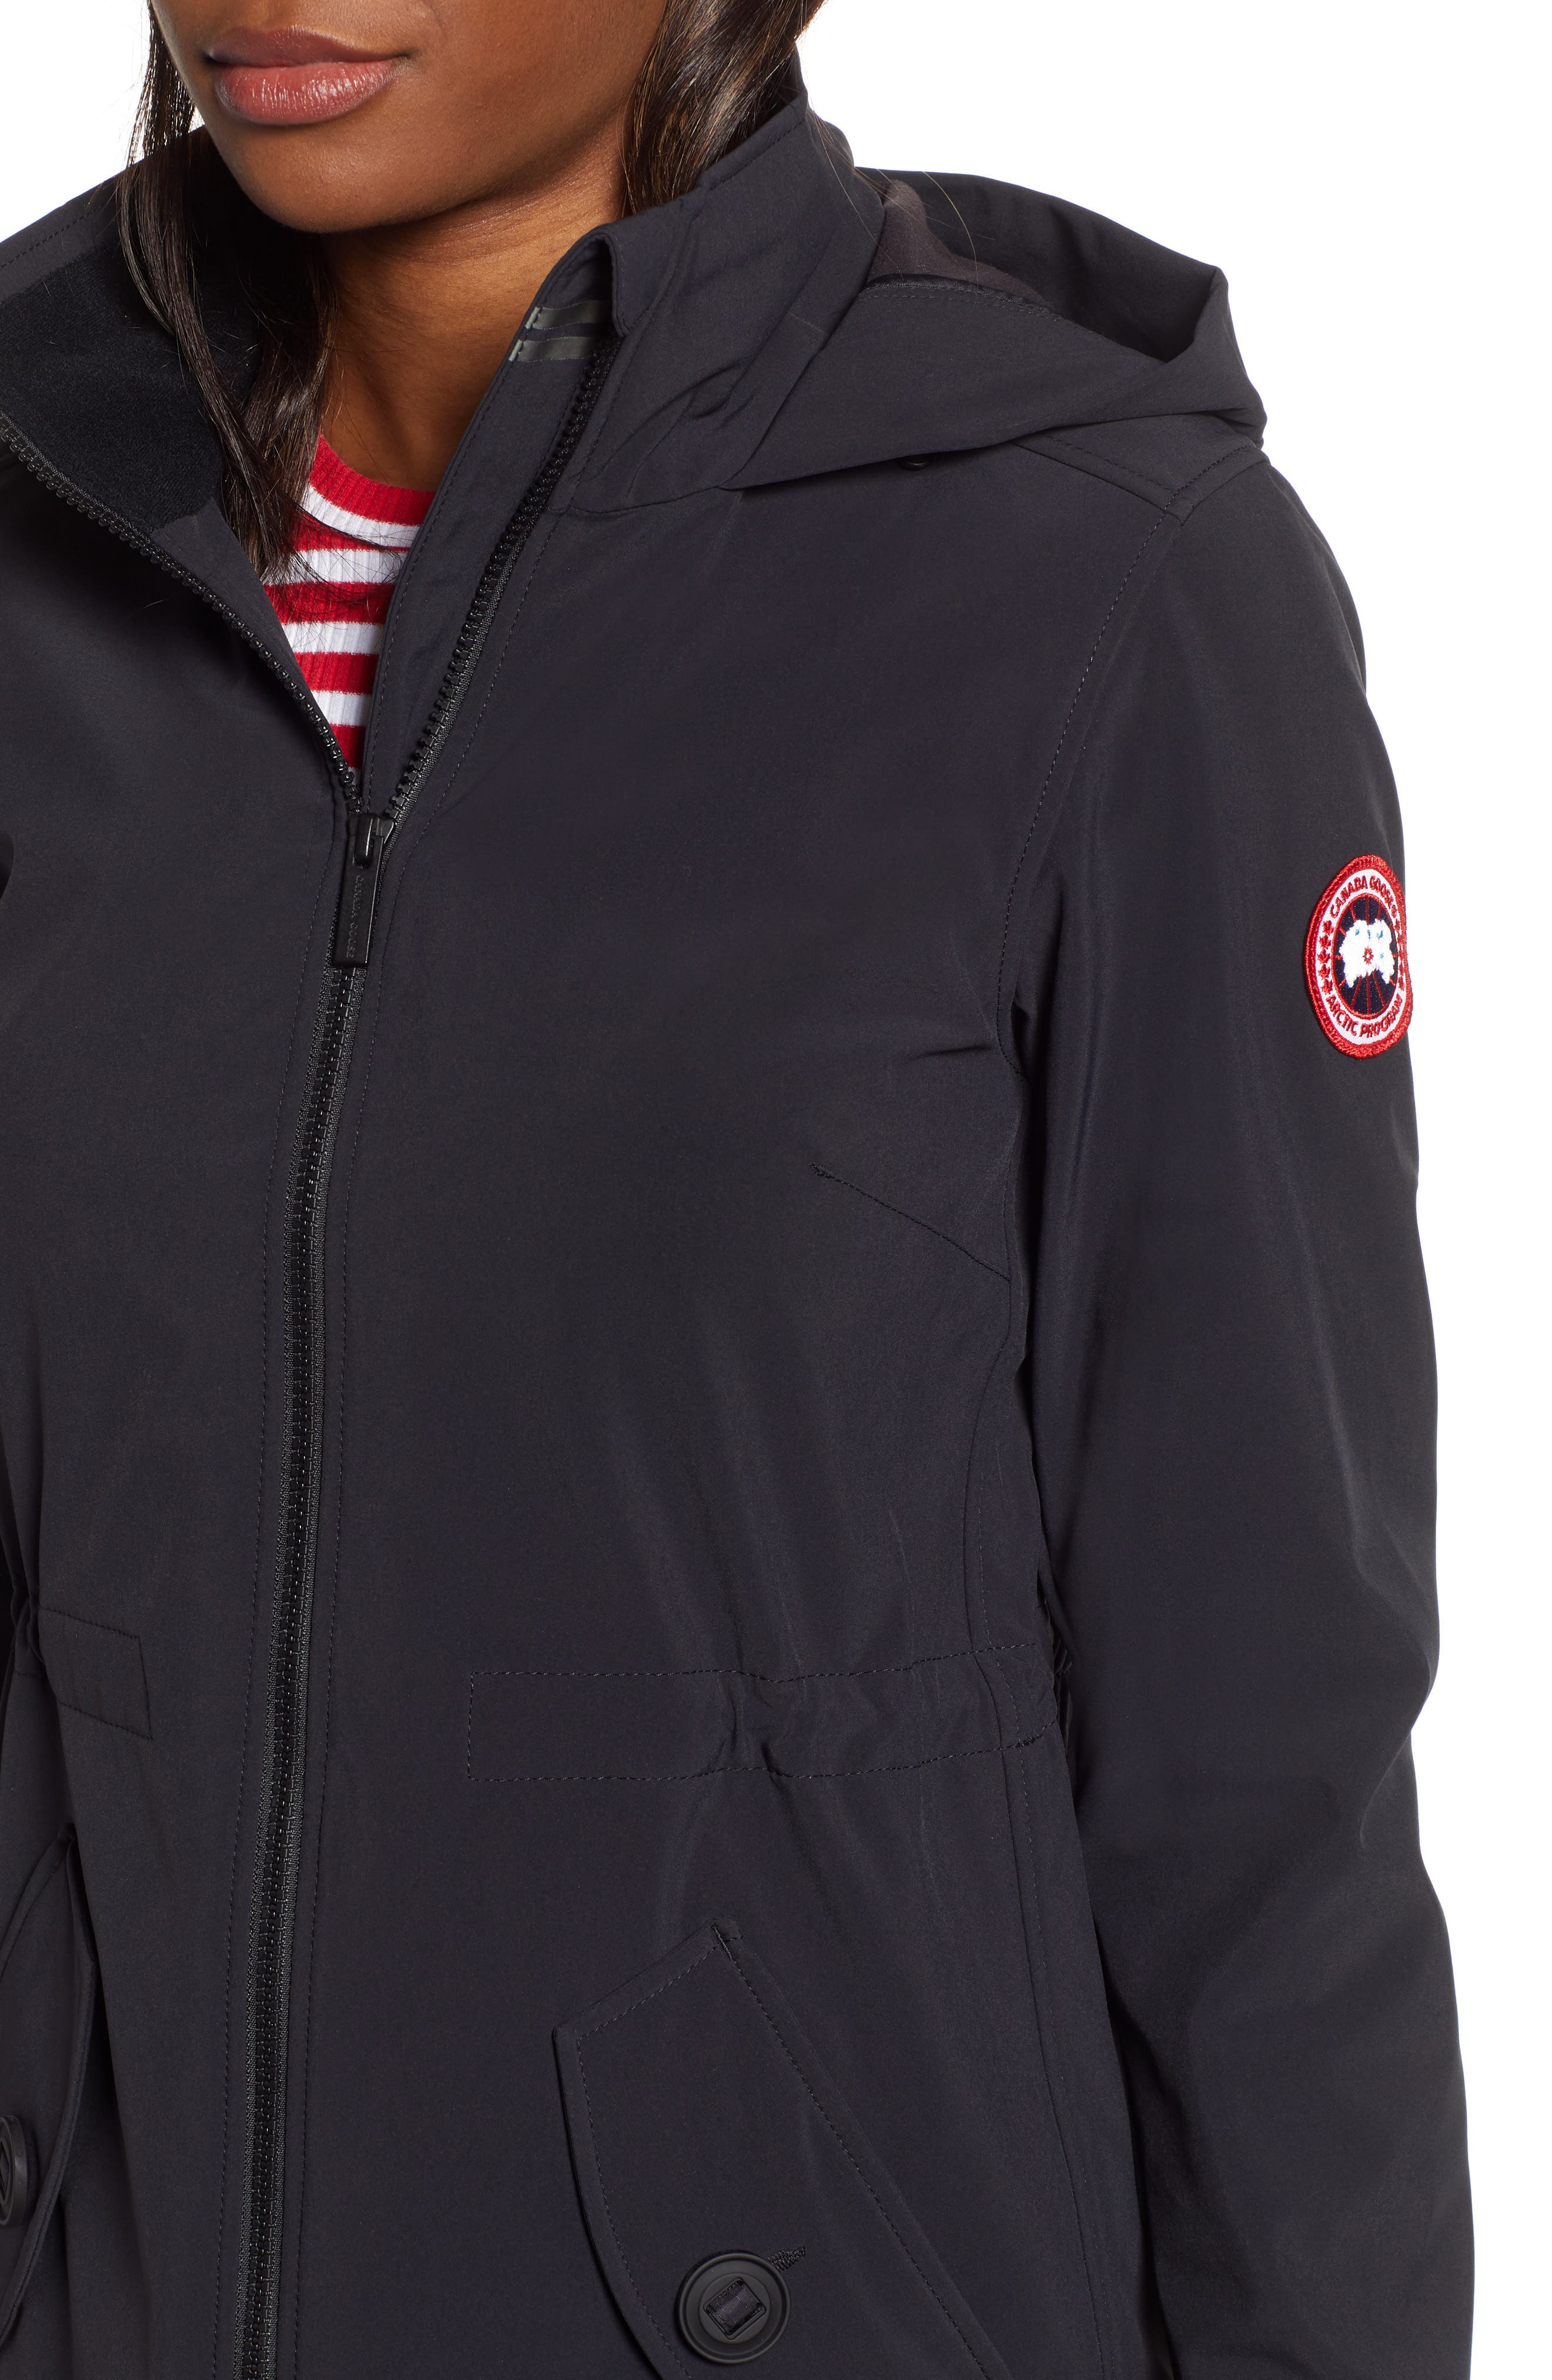 CANADA GOOSE, Avery Water Resistant Hooded Jacket, Alternate thumbnail 5, color, BLACK